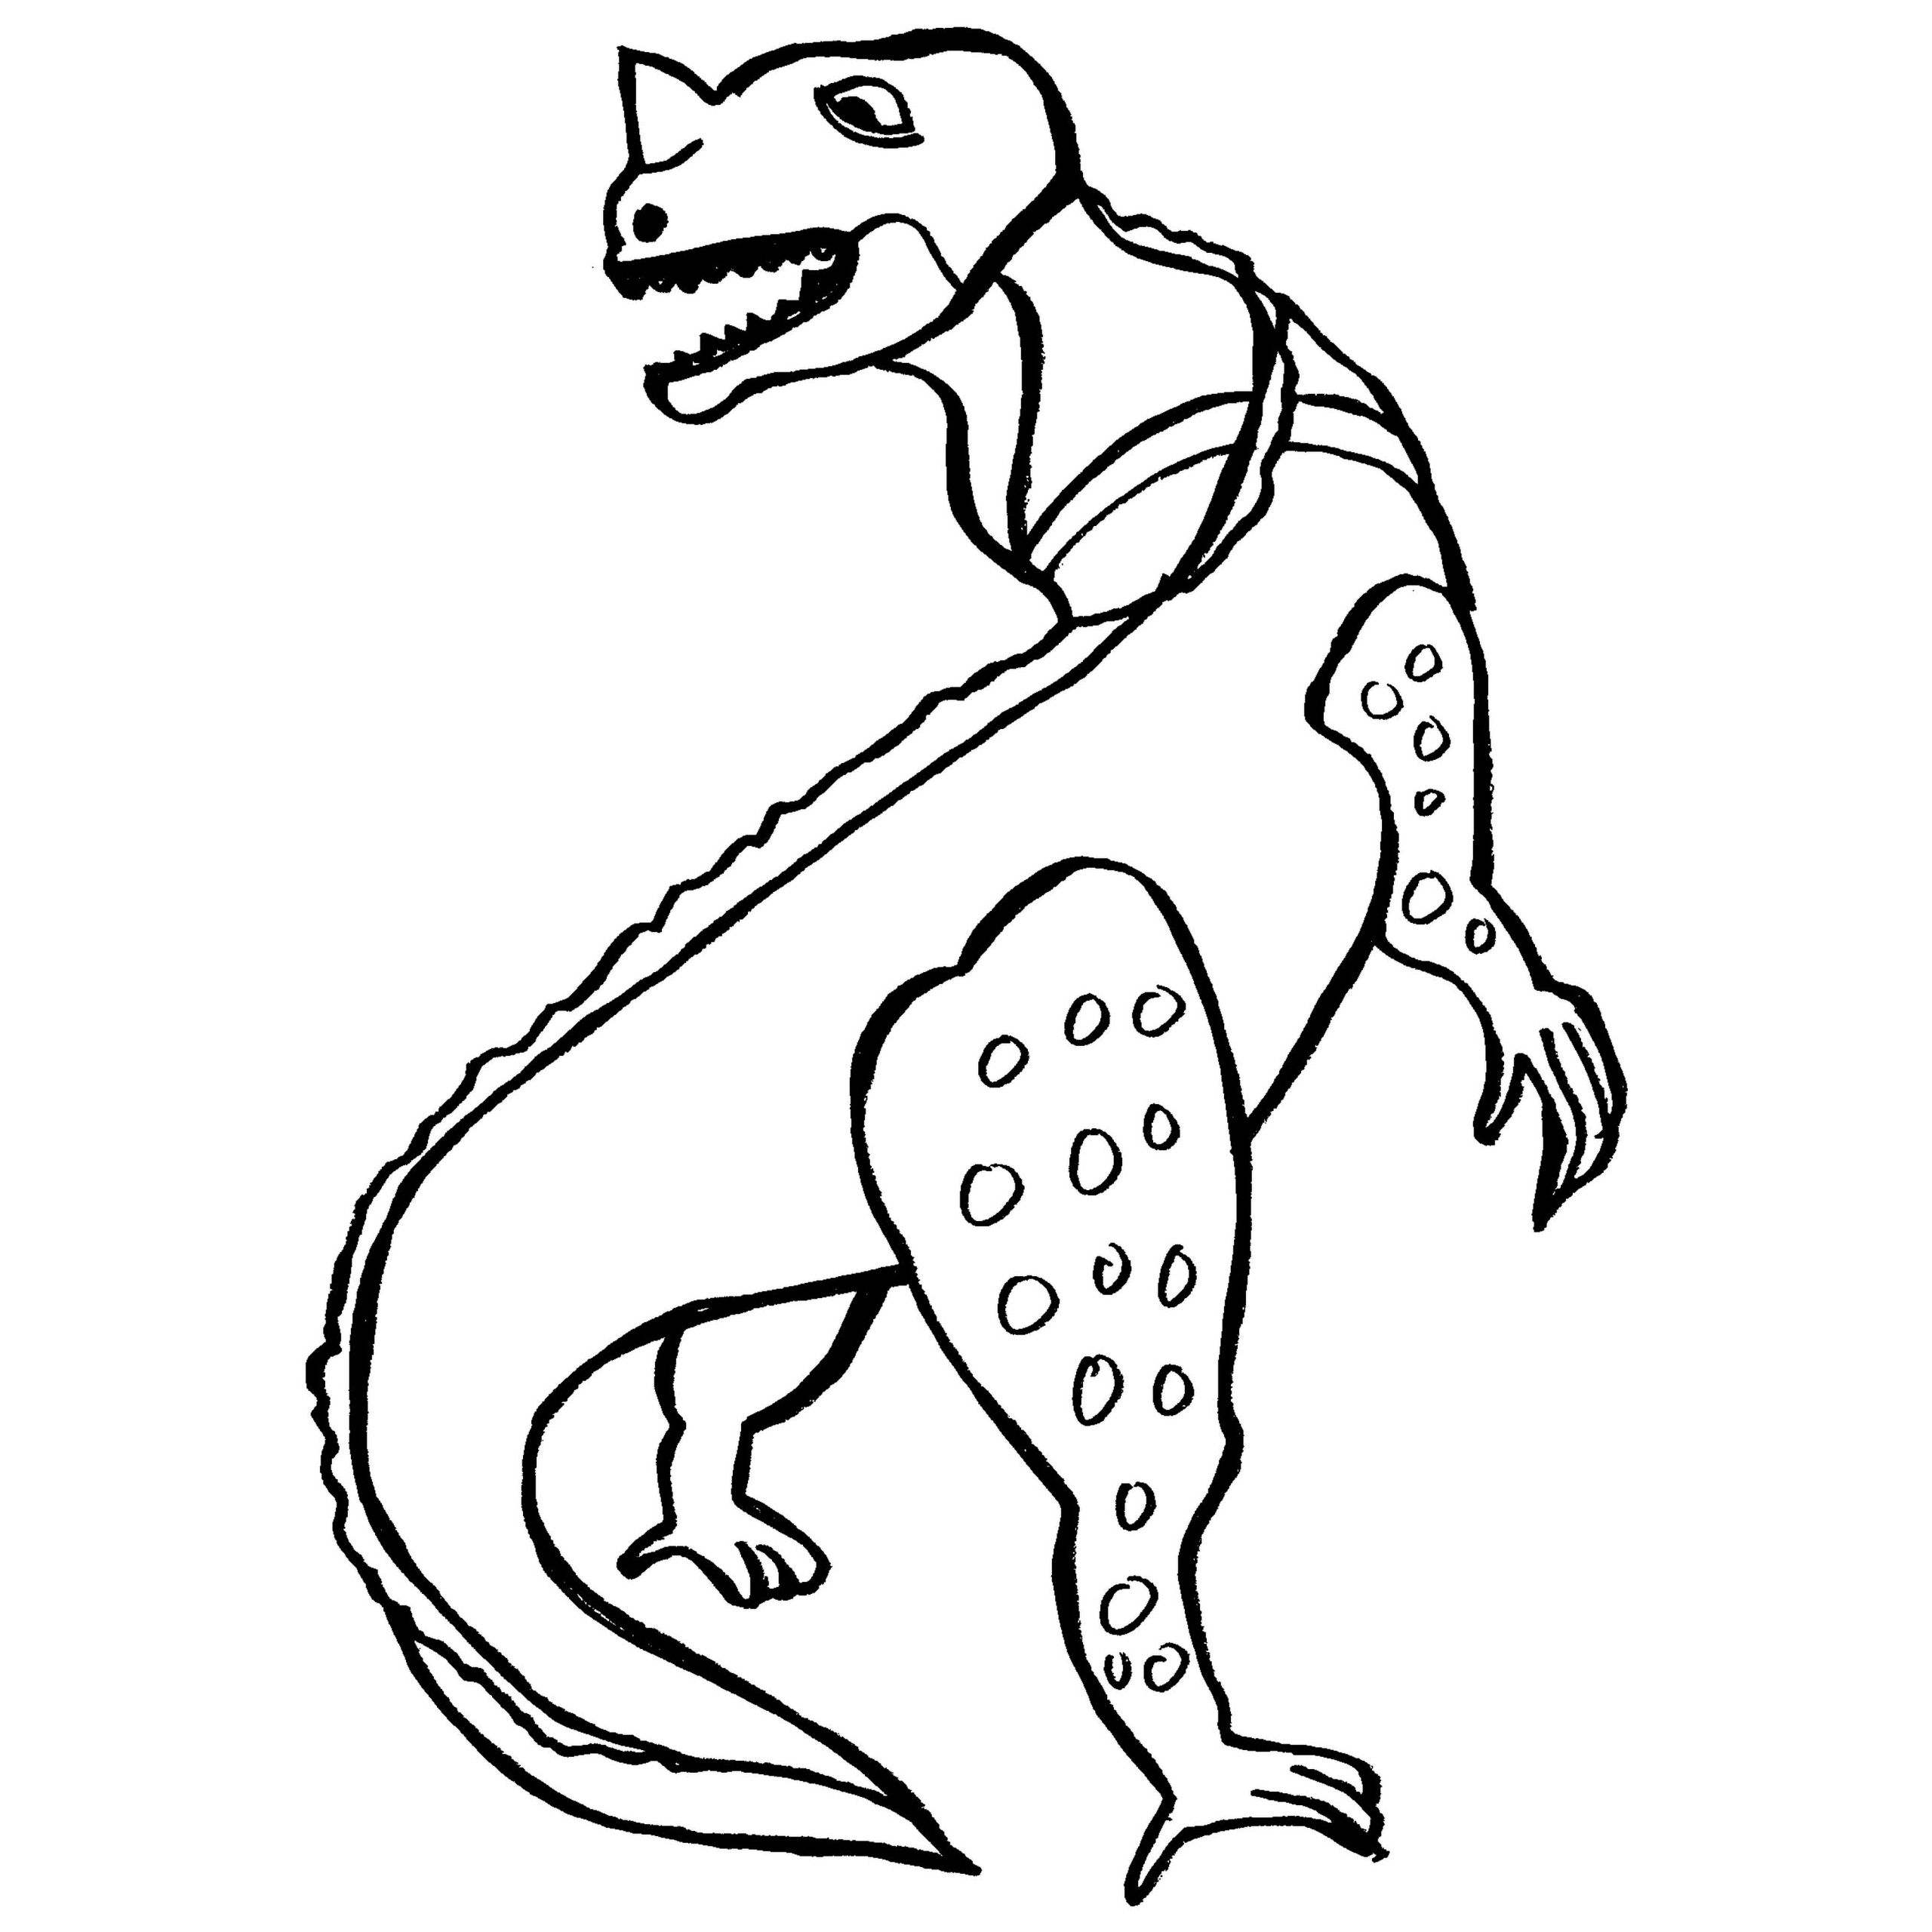 2560x2560 Ceratosaurus Coloring Pages Free Coloring For Kids